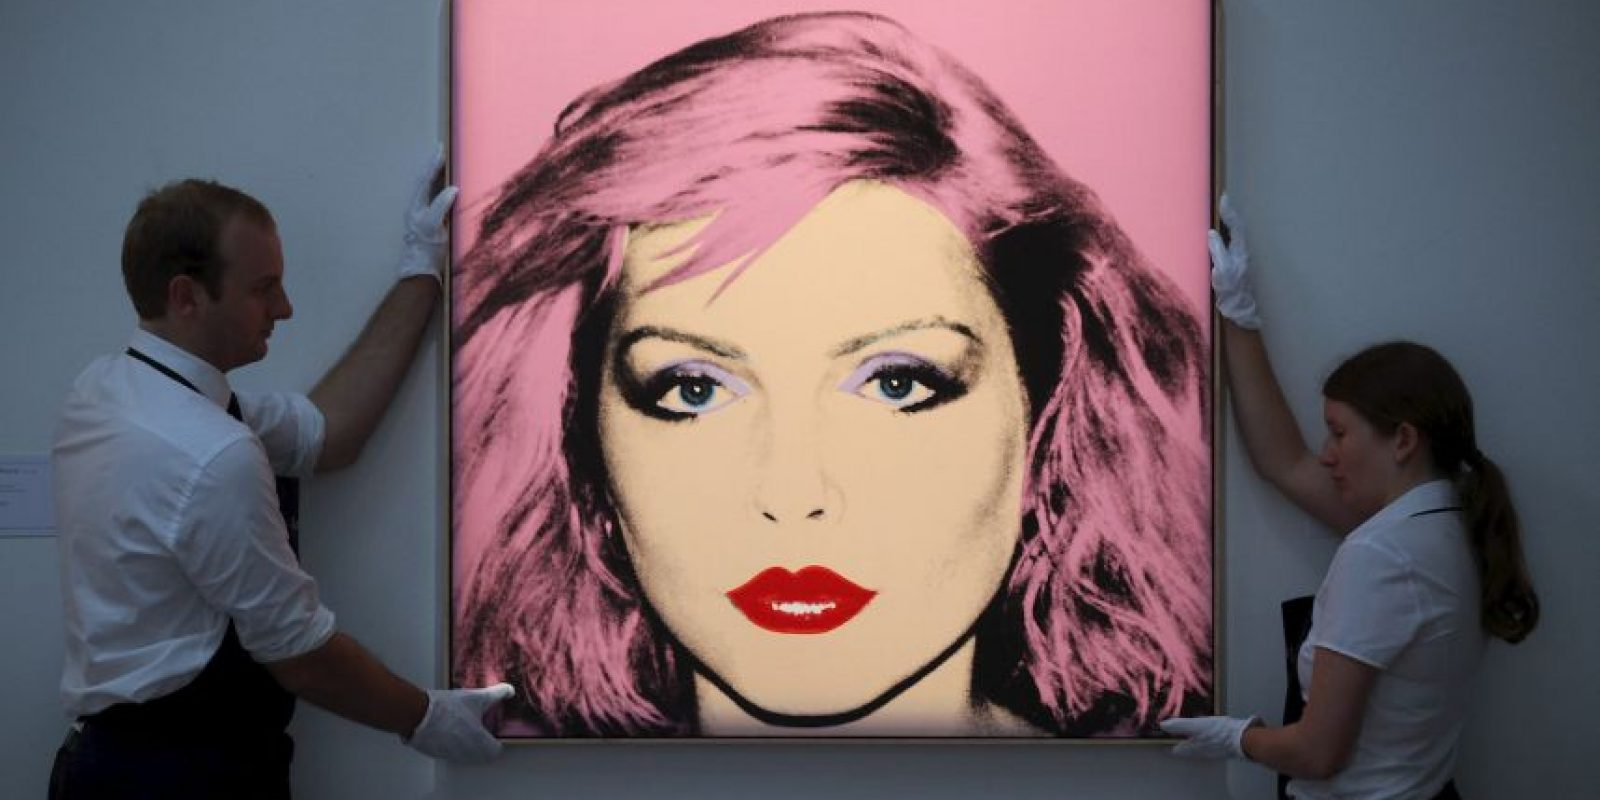 Retrato de Debbie Harry, vocalista de la banda setentera Blondie Foto: Getty Images